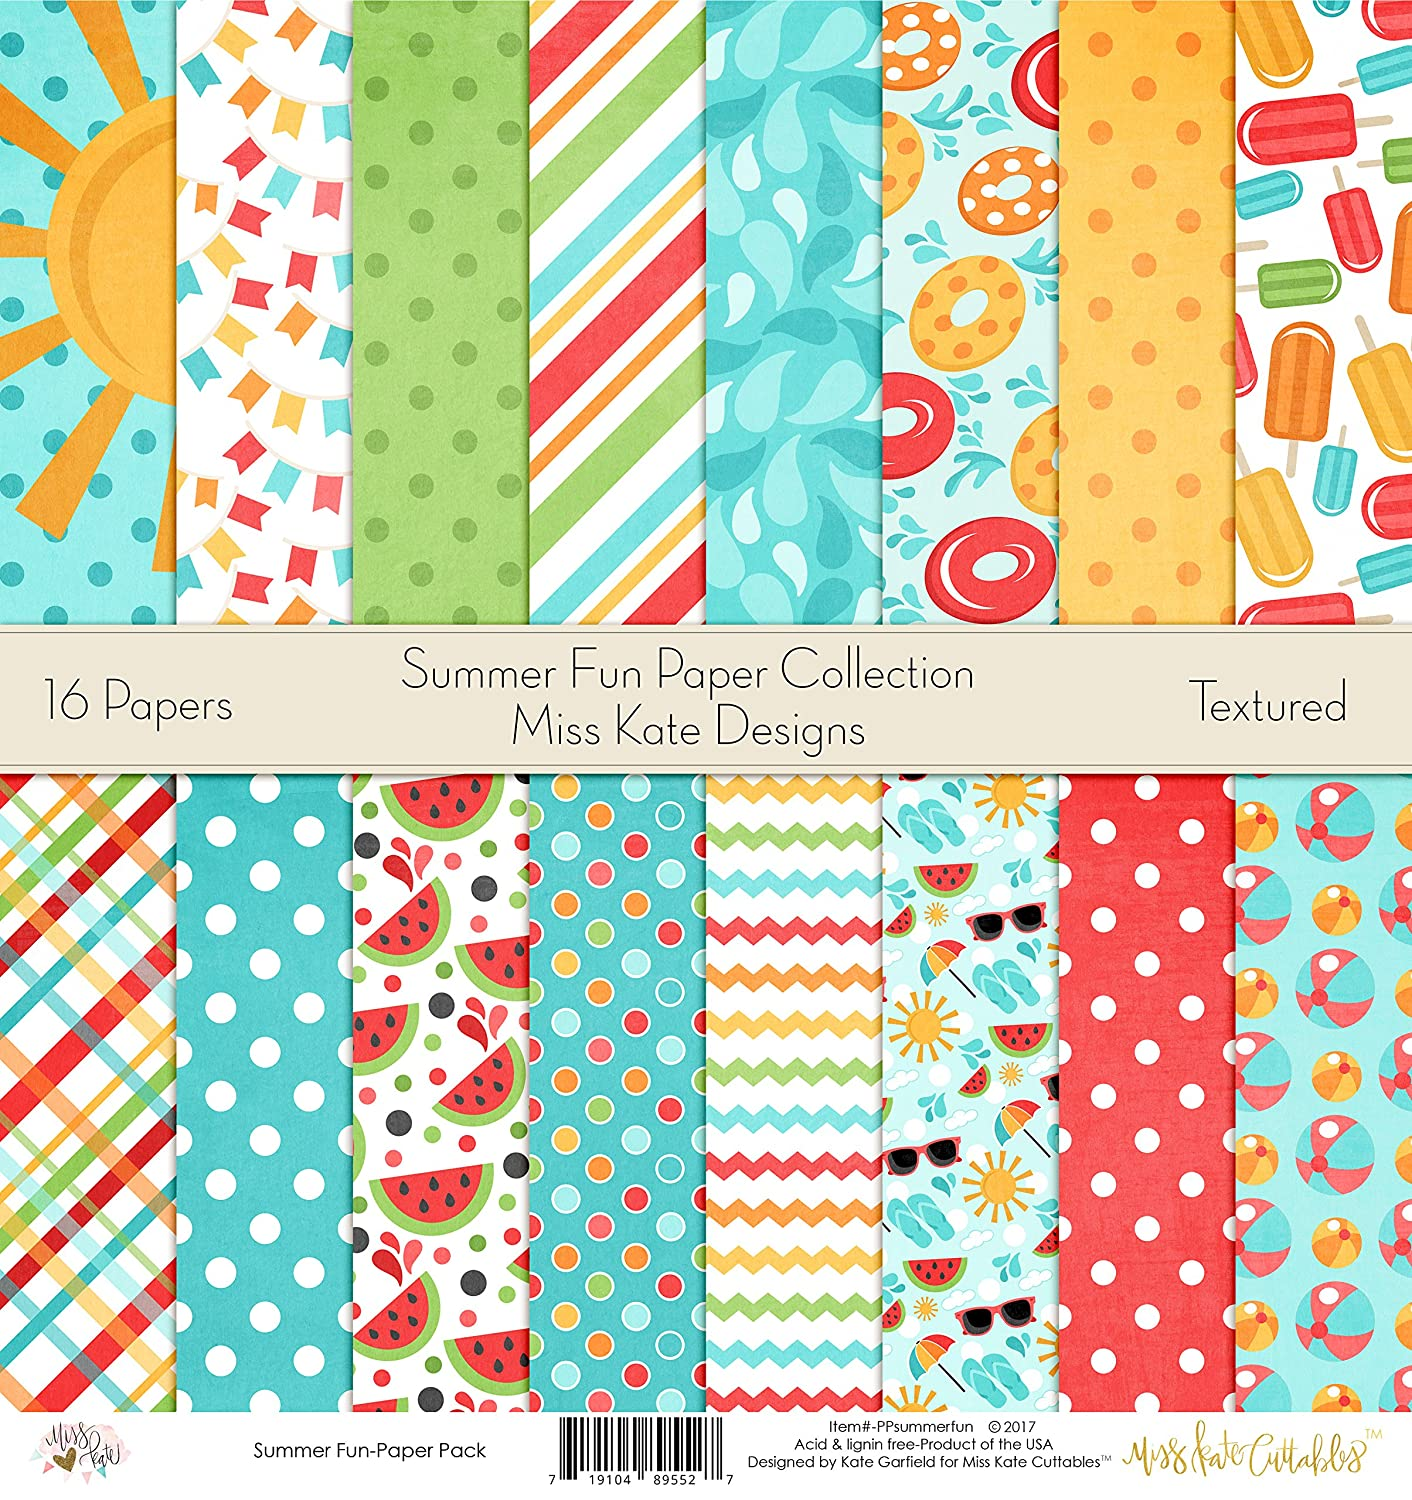 Amazon.com: Summer Fun Printed Scrapbook Paper Set By Miss Kate ...